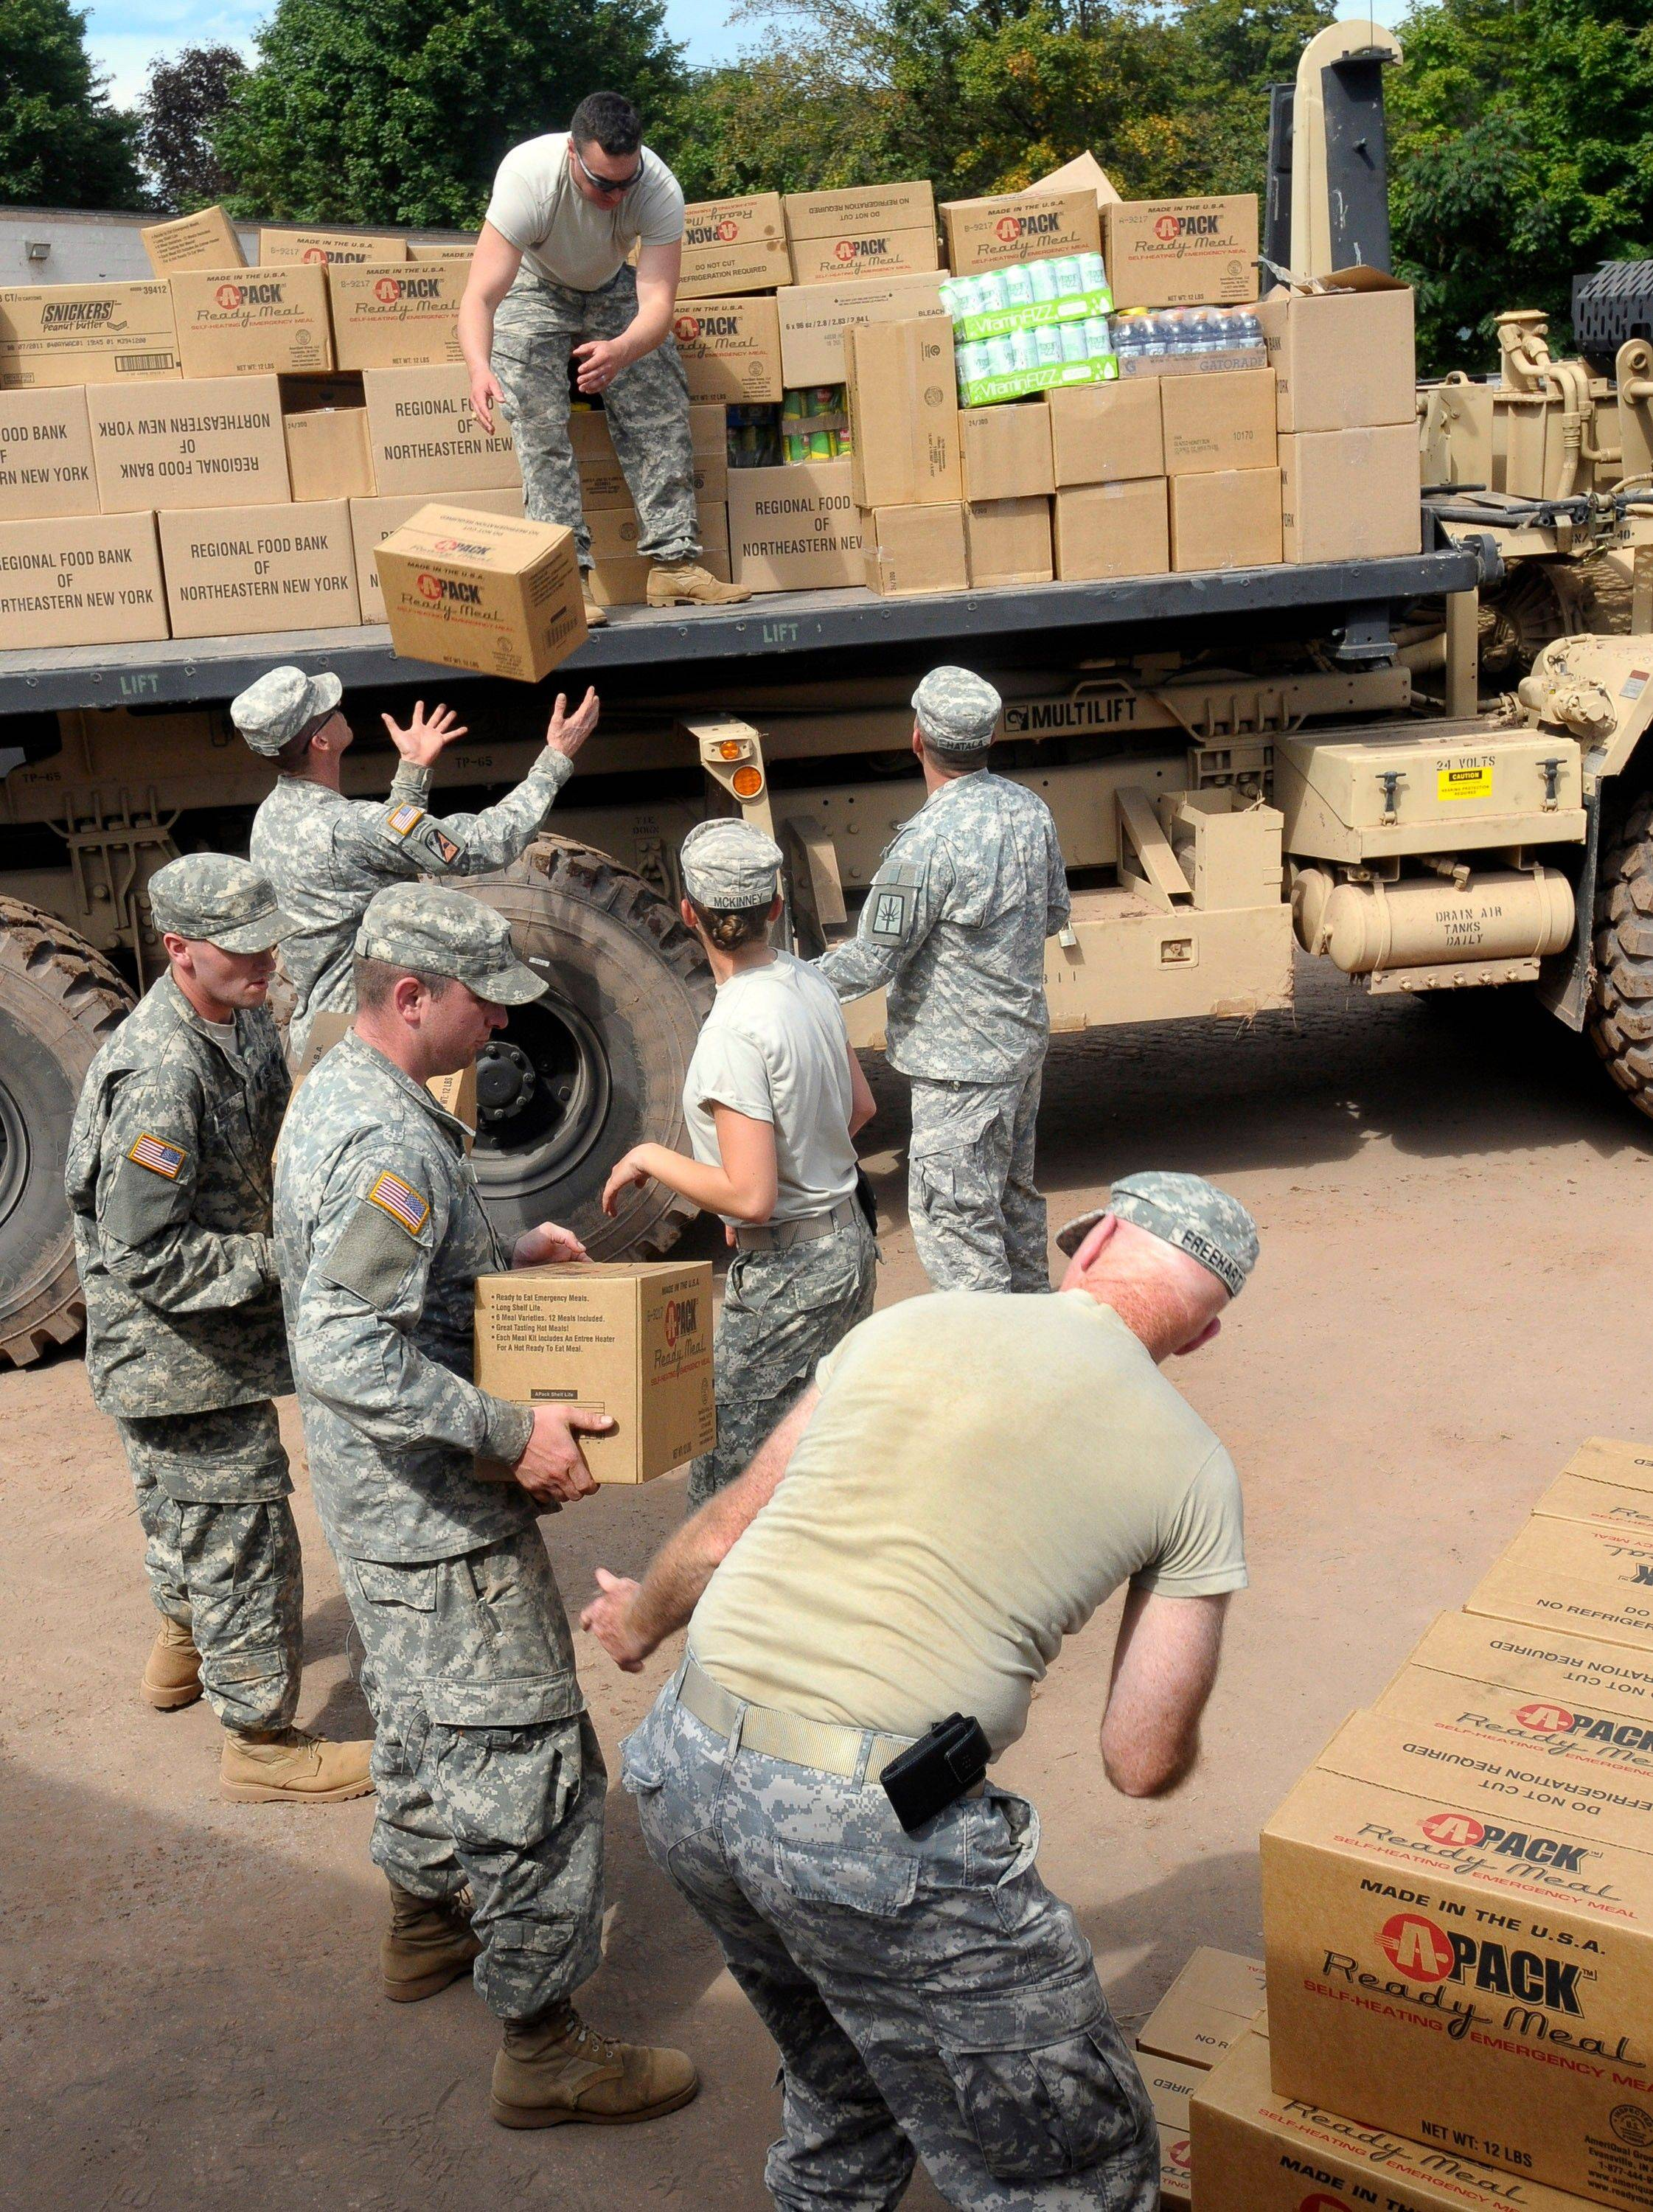 New York National Guard members unload food and water for flood victims of Tropical Storm Irene in Prattsville, N.Y., Wednesday. Tropical Storm Irene put a $1 billion whipping on New York, most of it upstate where heavy rains spawned flash floods that shredded roads, washed out bridges and knocked buildings from their foundations, Gov. Andrew Cuomo said Wednesday.